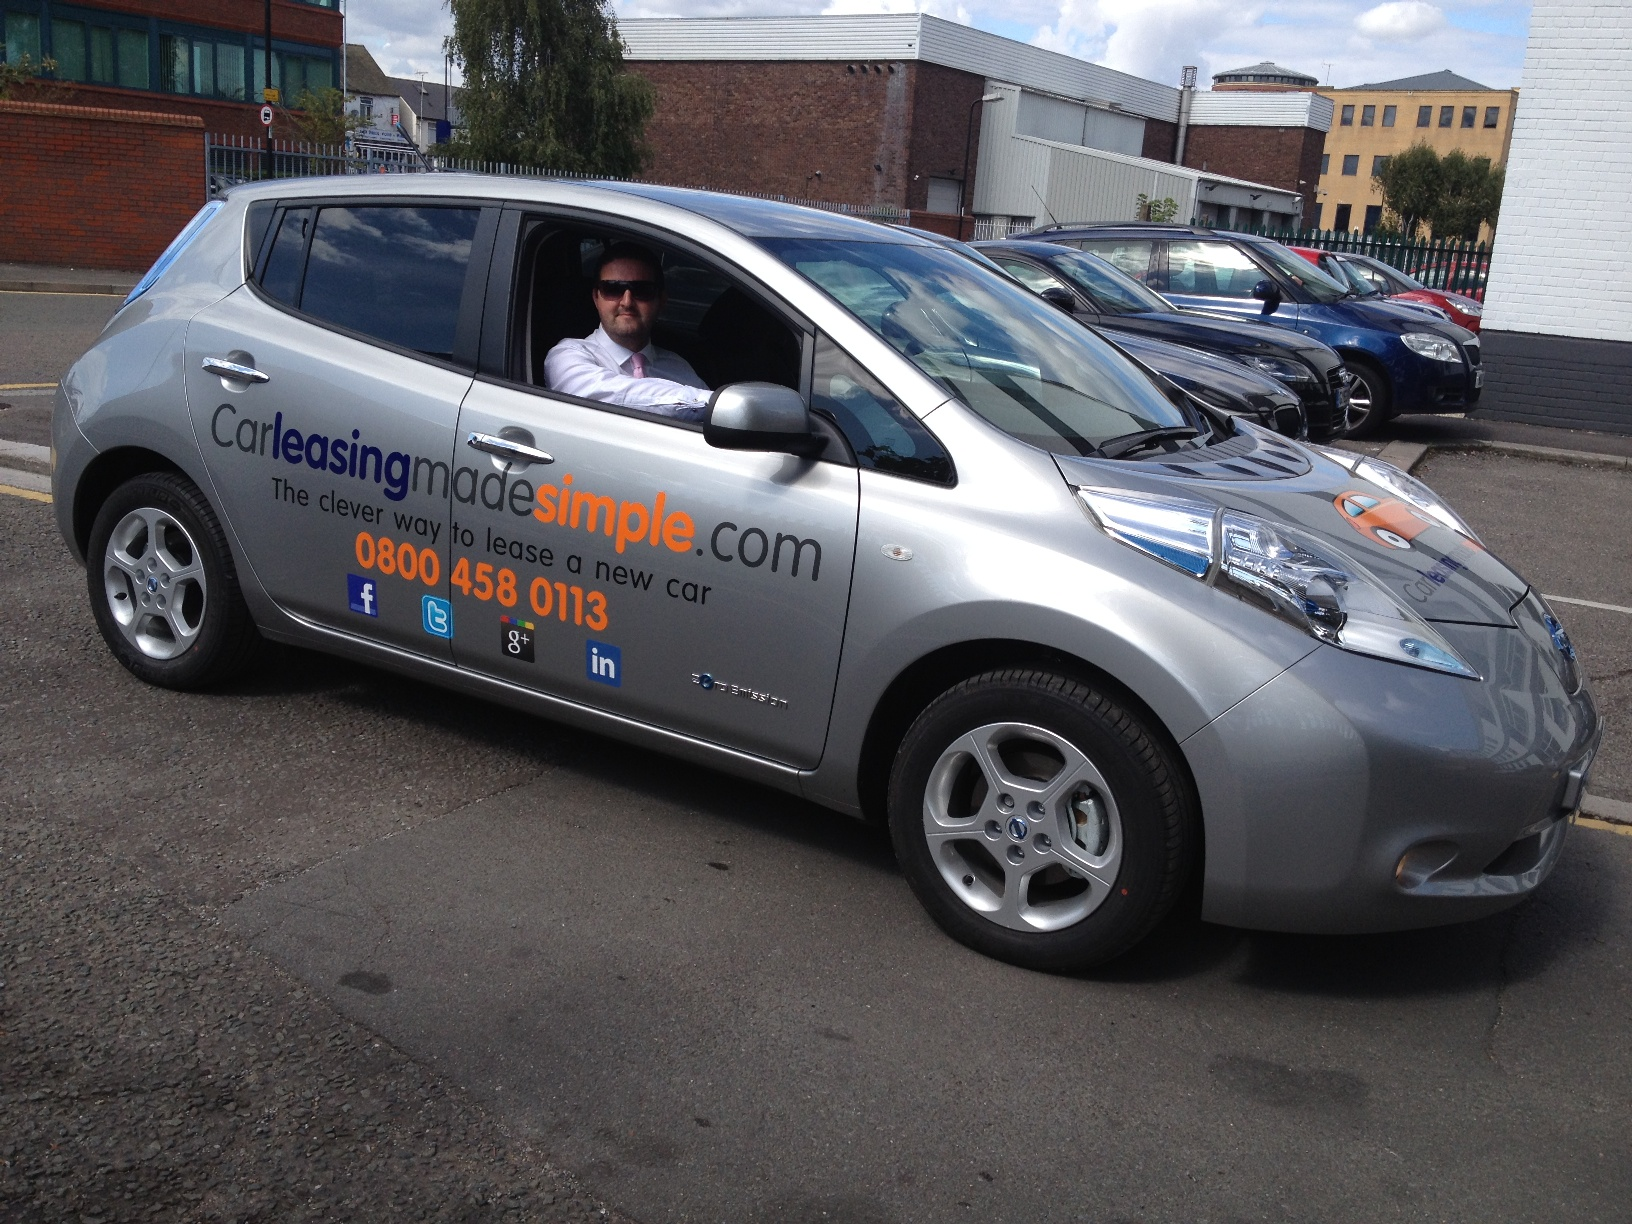 Nissan Leaf - Car Leasing Made Simple Comapny Branding Car